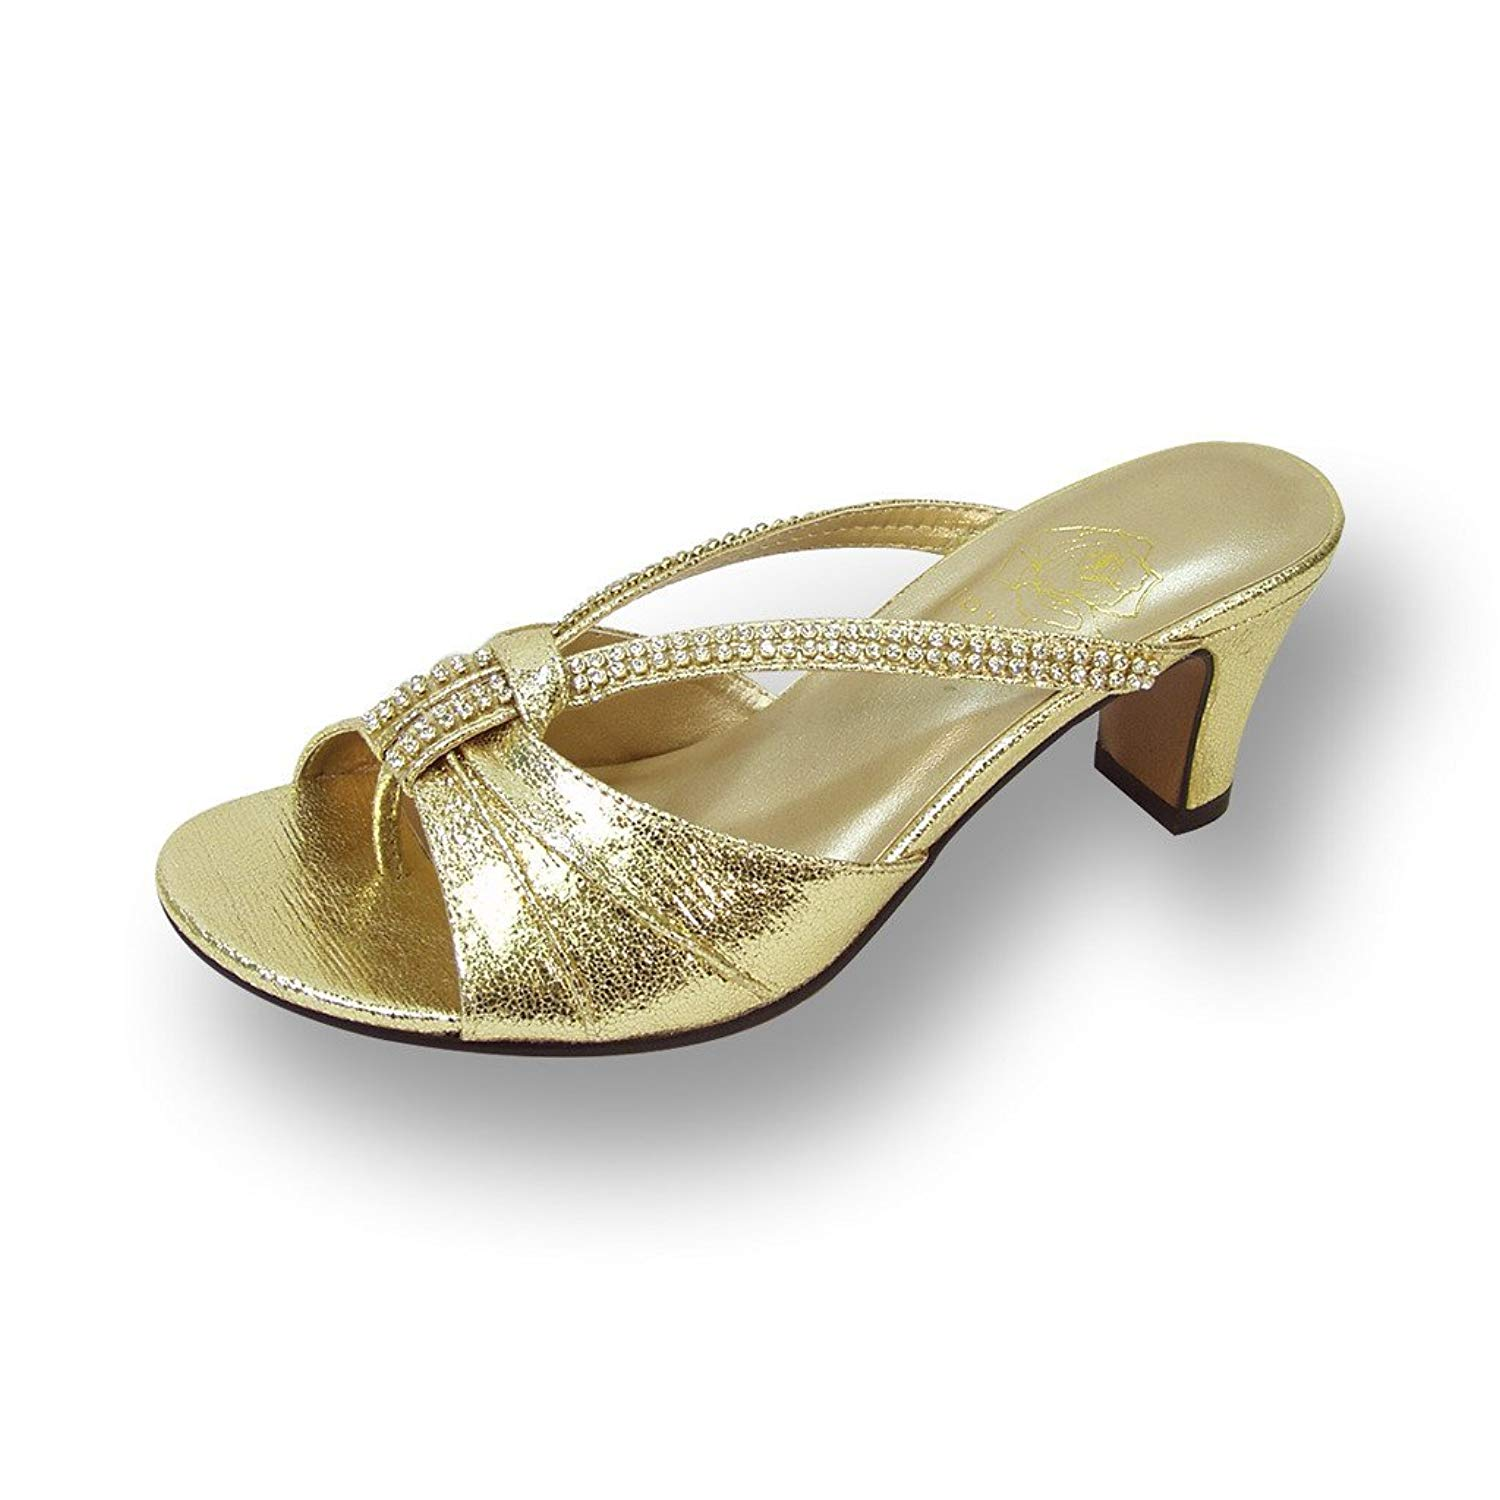 e11c3c607bfd5b Get Quotations · Floral FIC Chrissy Women Wide Width Shiny Slip On Heeled  Dress Sandals (Size/Measurement